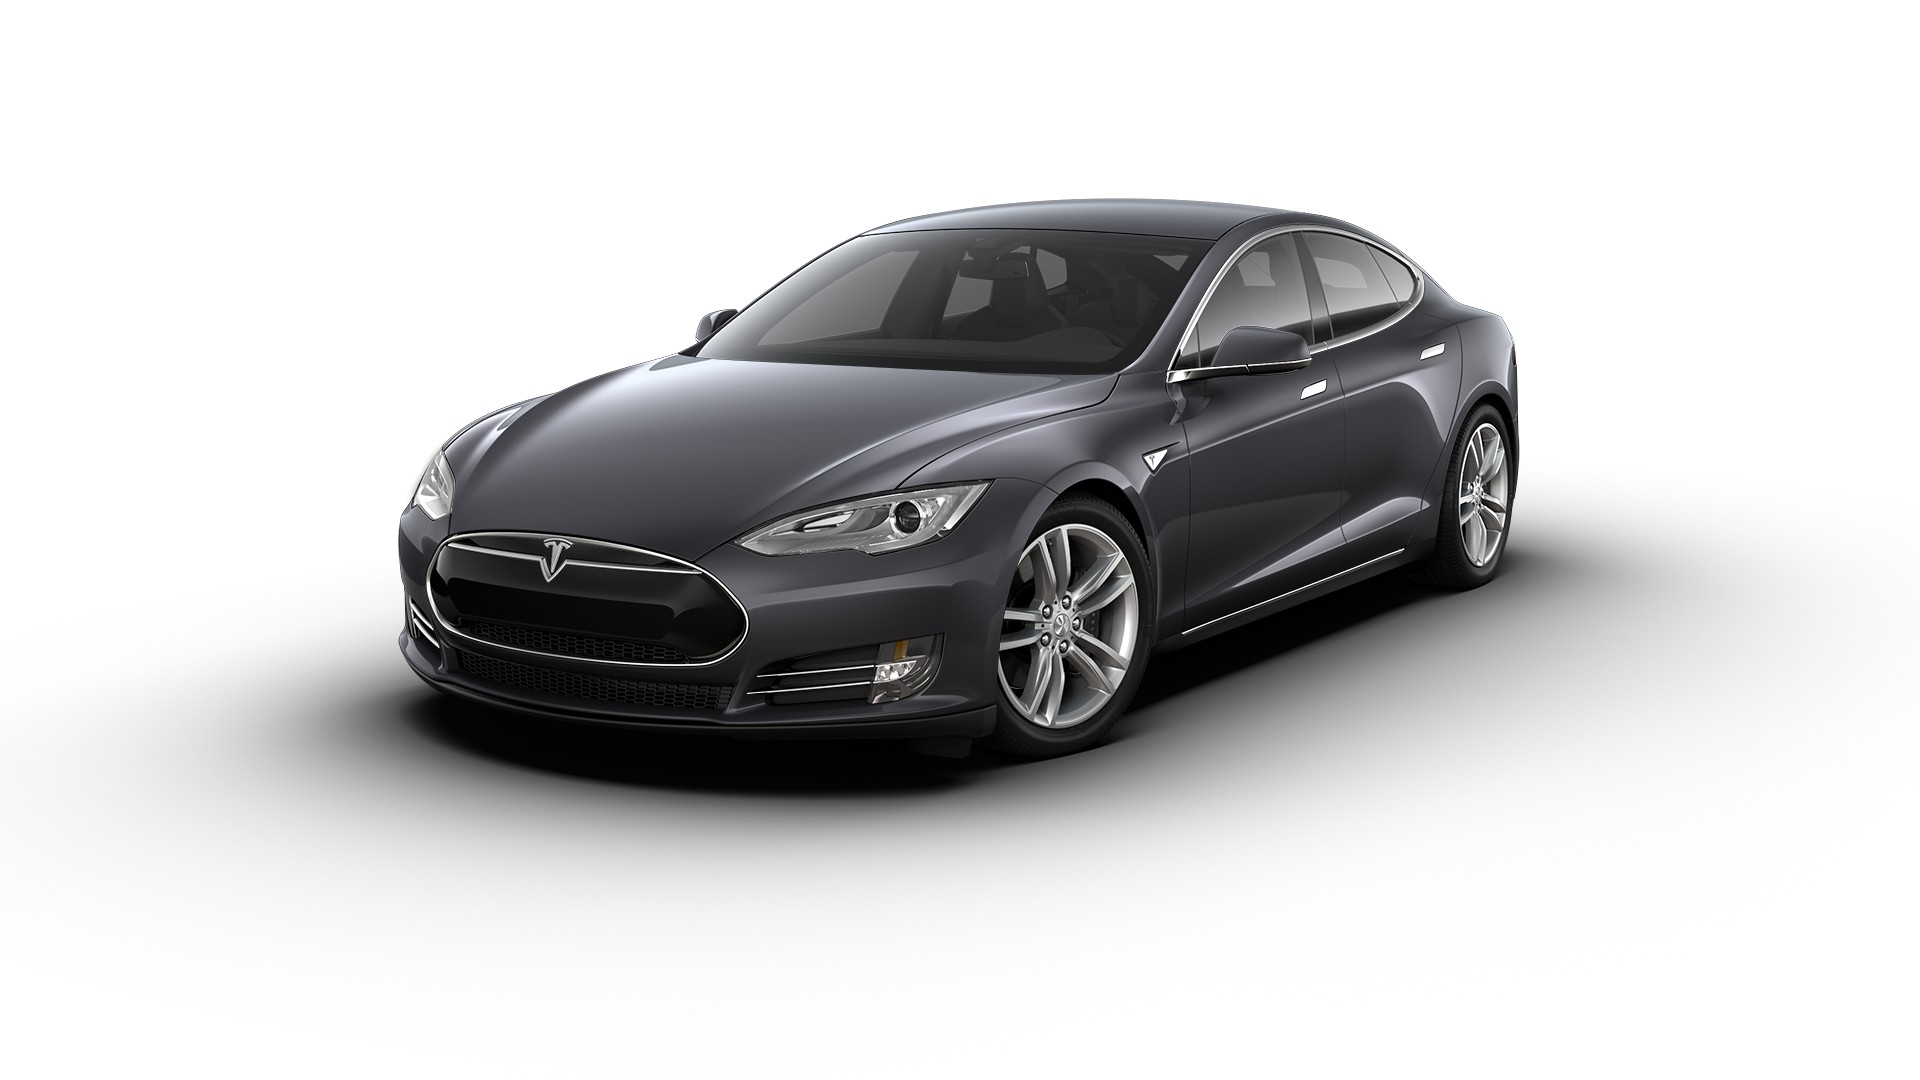 inventory tesla model s 85 Grey Metallic (Dolphin Grey)